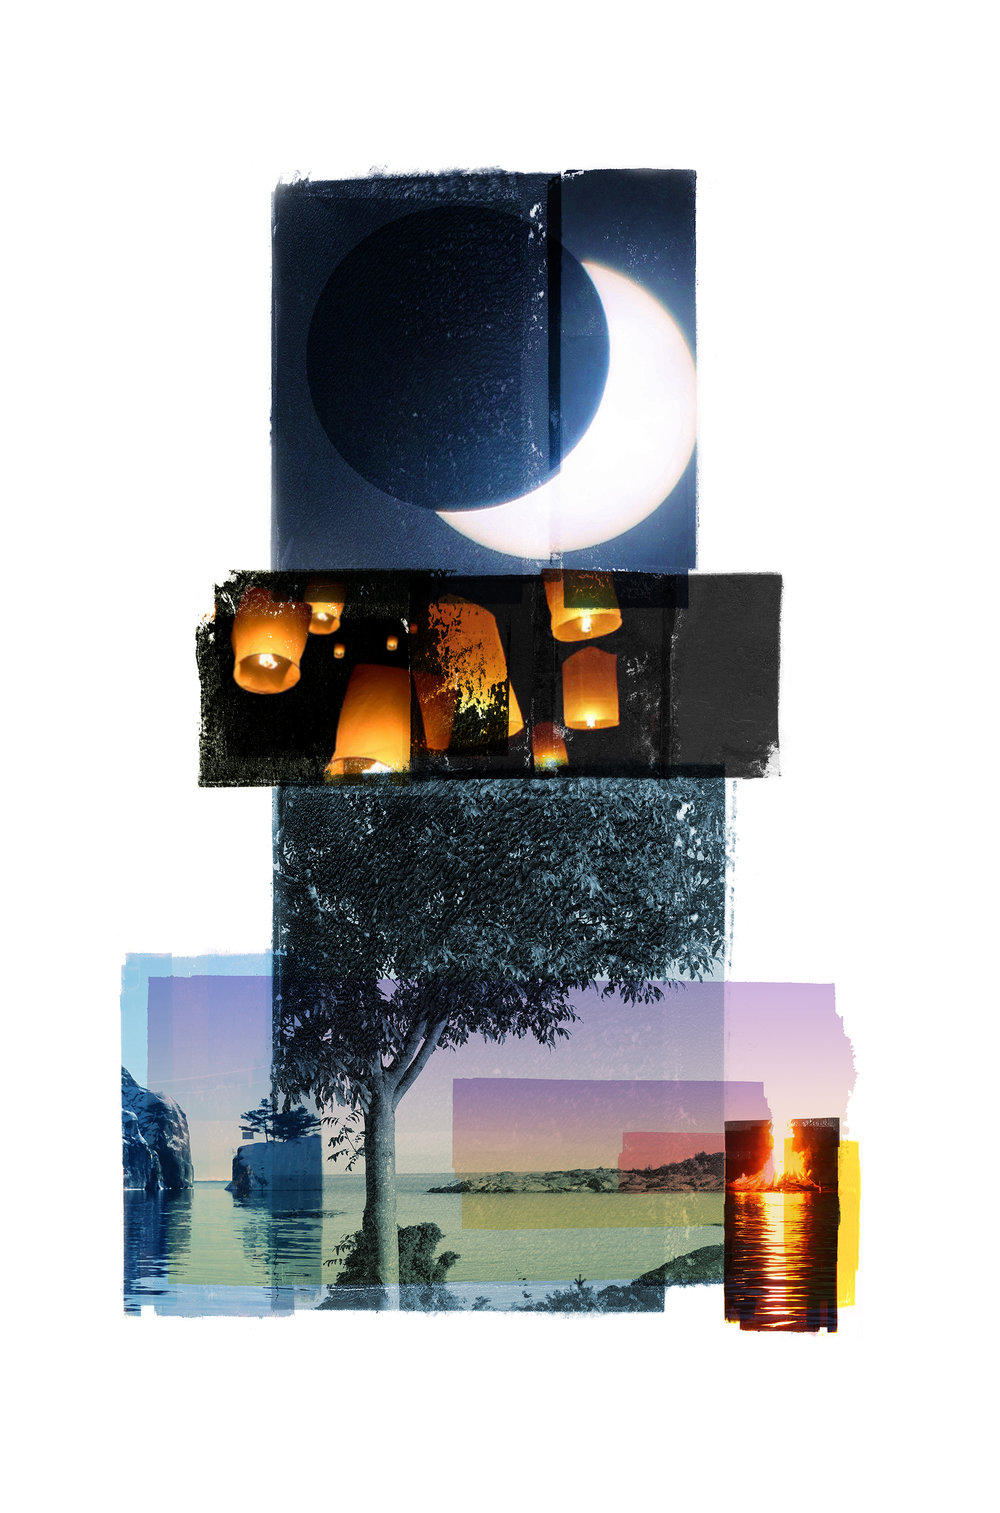 Ascend / Eclipse of the sun / Olsok (Archipelago)   Photolitho / BFK Rives 250 gr 57 x 38 cm / 22,5 x 15 in Edition of 100 + 10 A Editeur: IDEM PARIS / Per Fronth   18/2016: